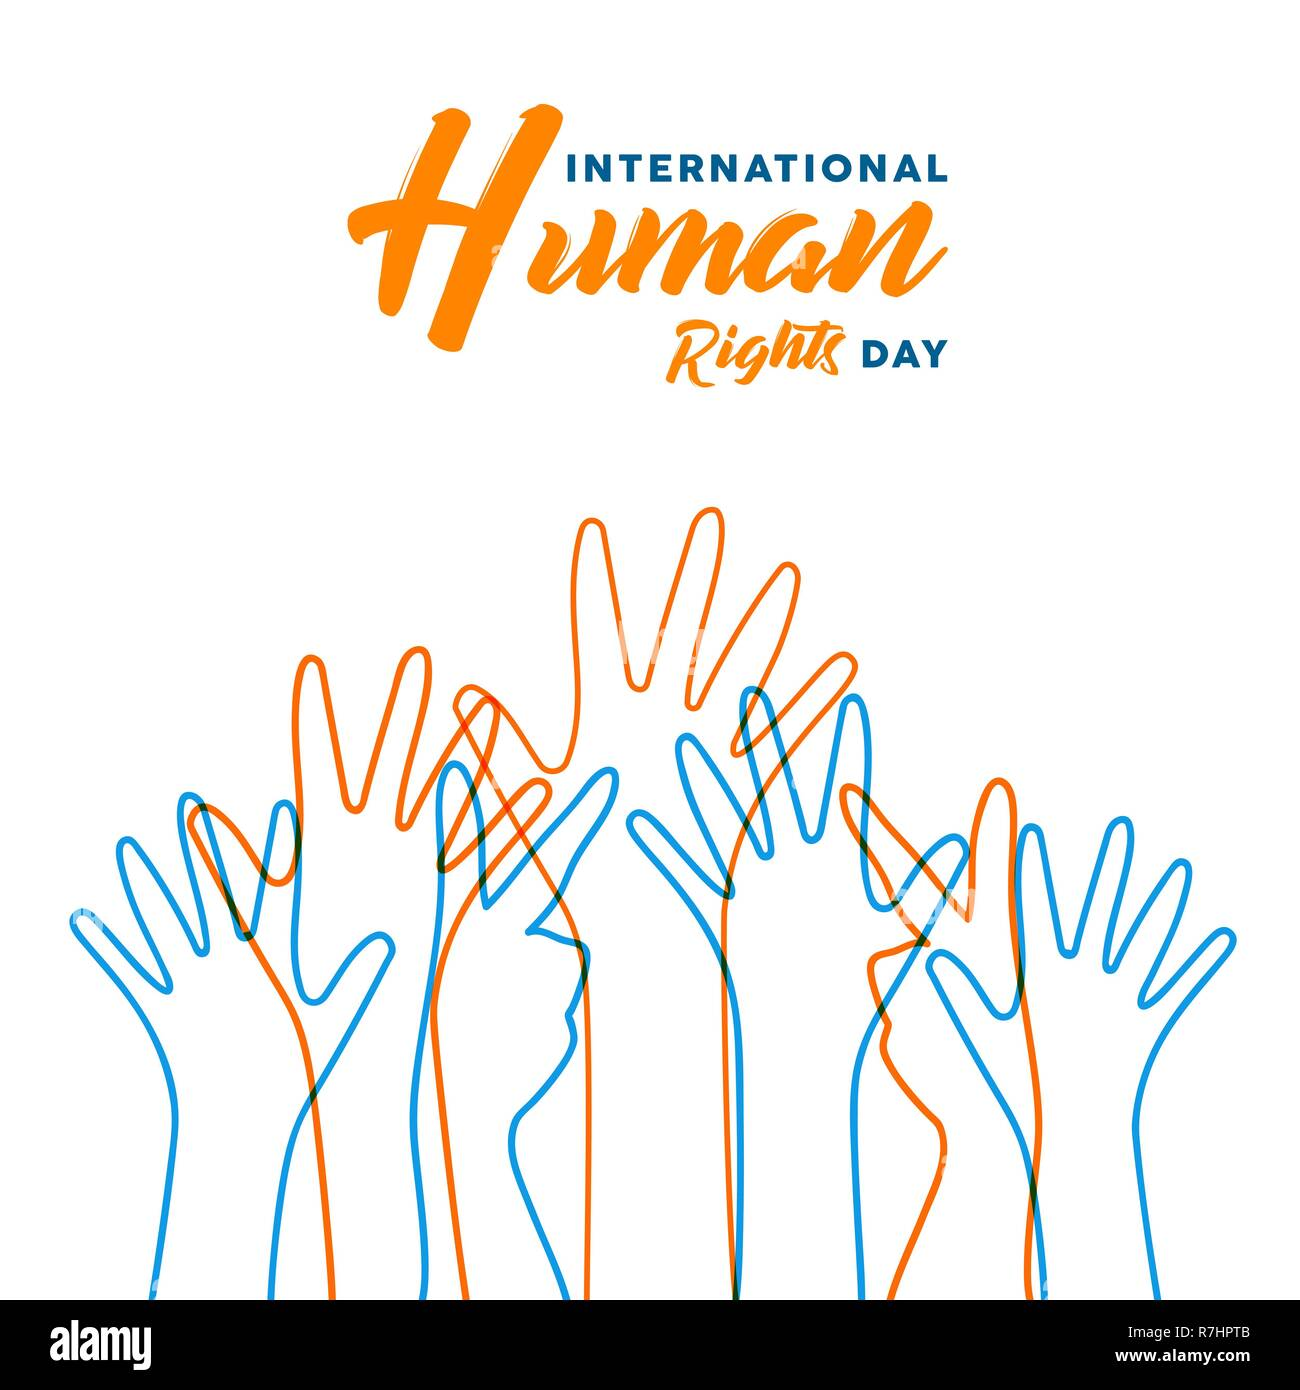 88e9b4402005 International Human Rights awareness day illustration for global equality  and peace with colorful people hands